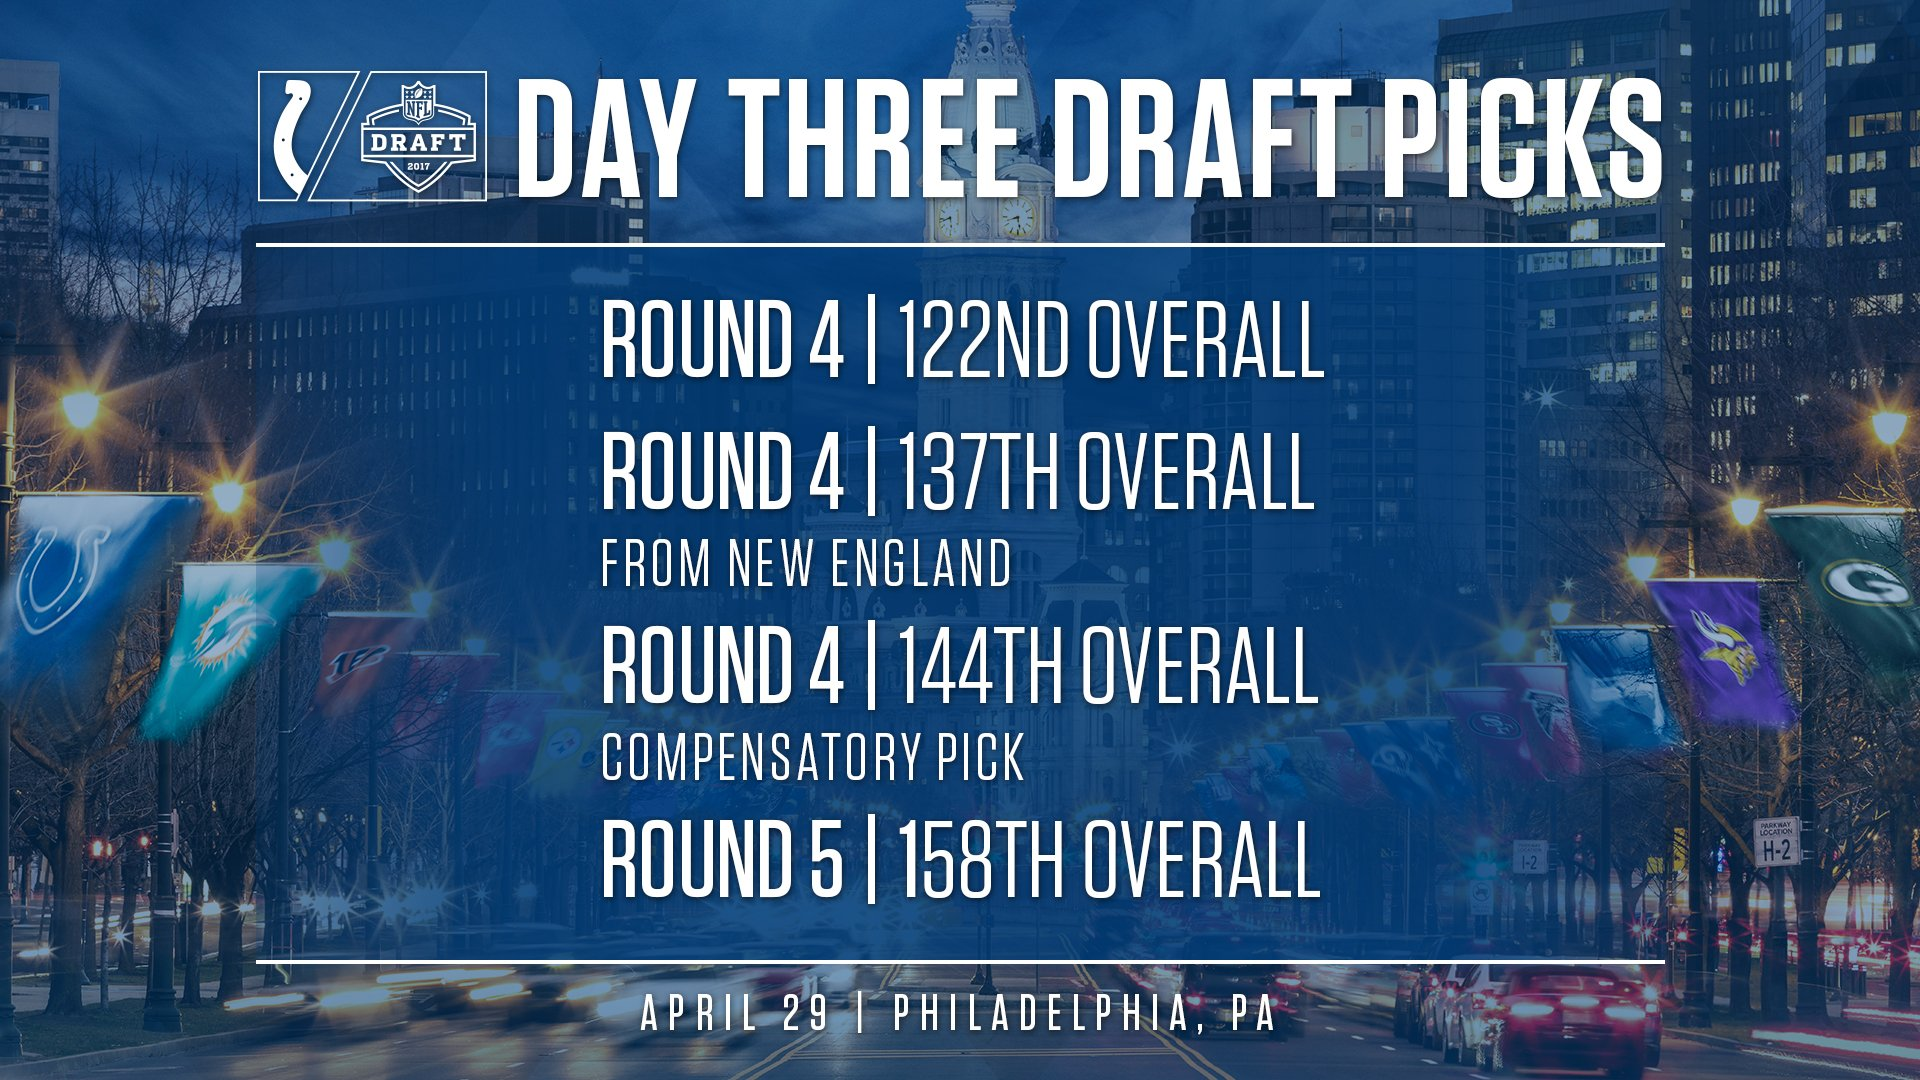 #ColtsDraft https://t.co/iv9xLoUcQg